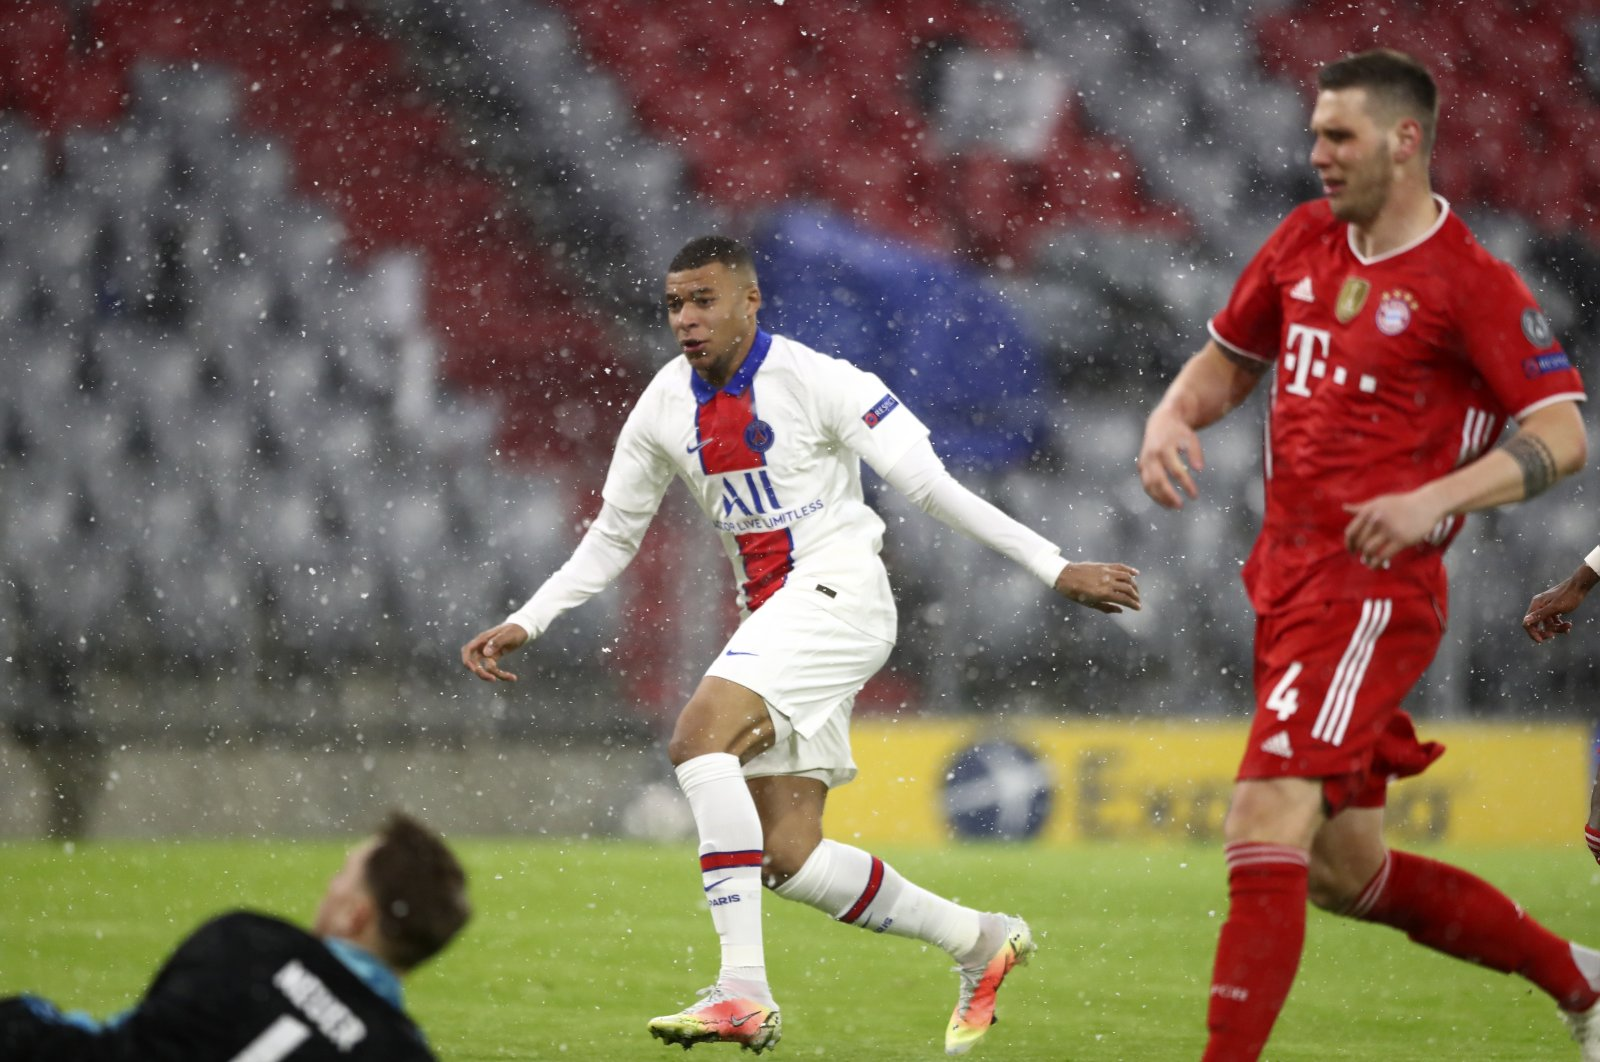 PSG's Kylian Mbappe (C) scores the opening goal of his team during the Champions League quarterfinal soccer match between Bayern Munich and Paris Saint Germain in Munich, Germany, April 7, 2021. (AP Photo)